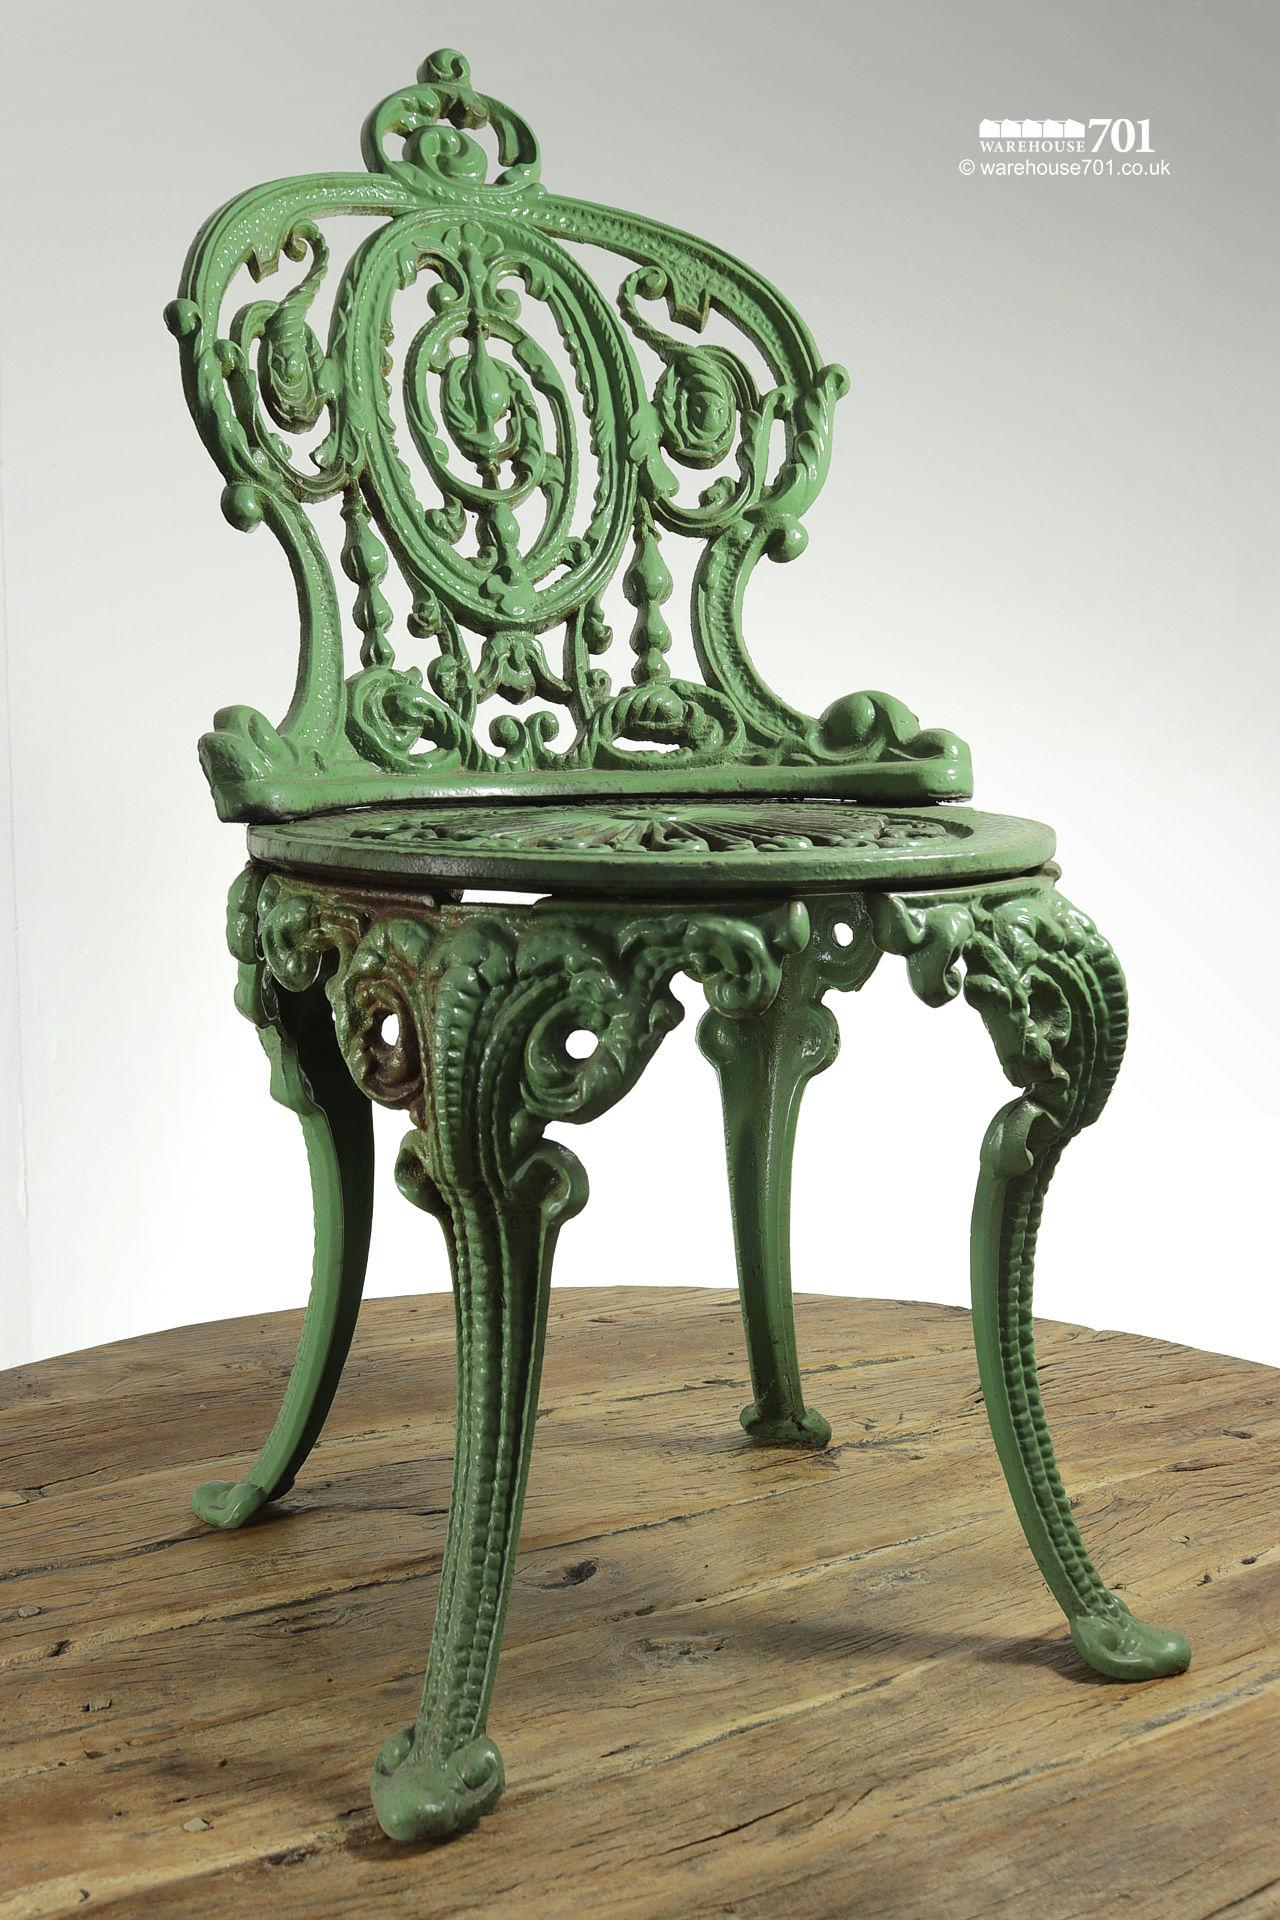 Fabulous Authentic Period Very Heavy Cast Iron Green Garden Chair #2